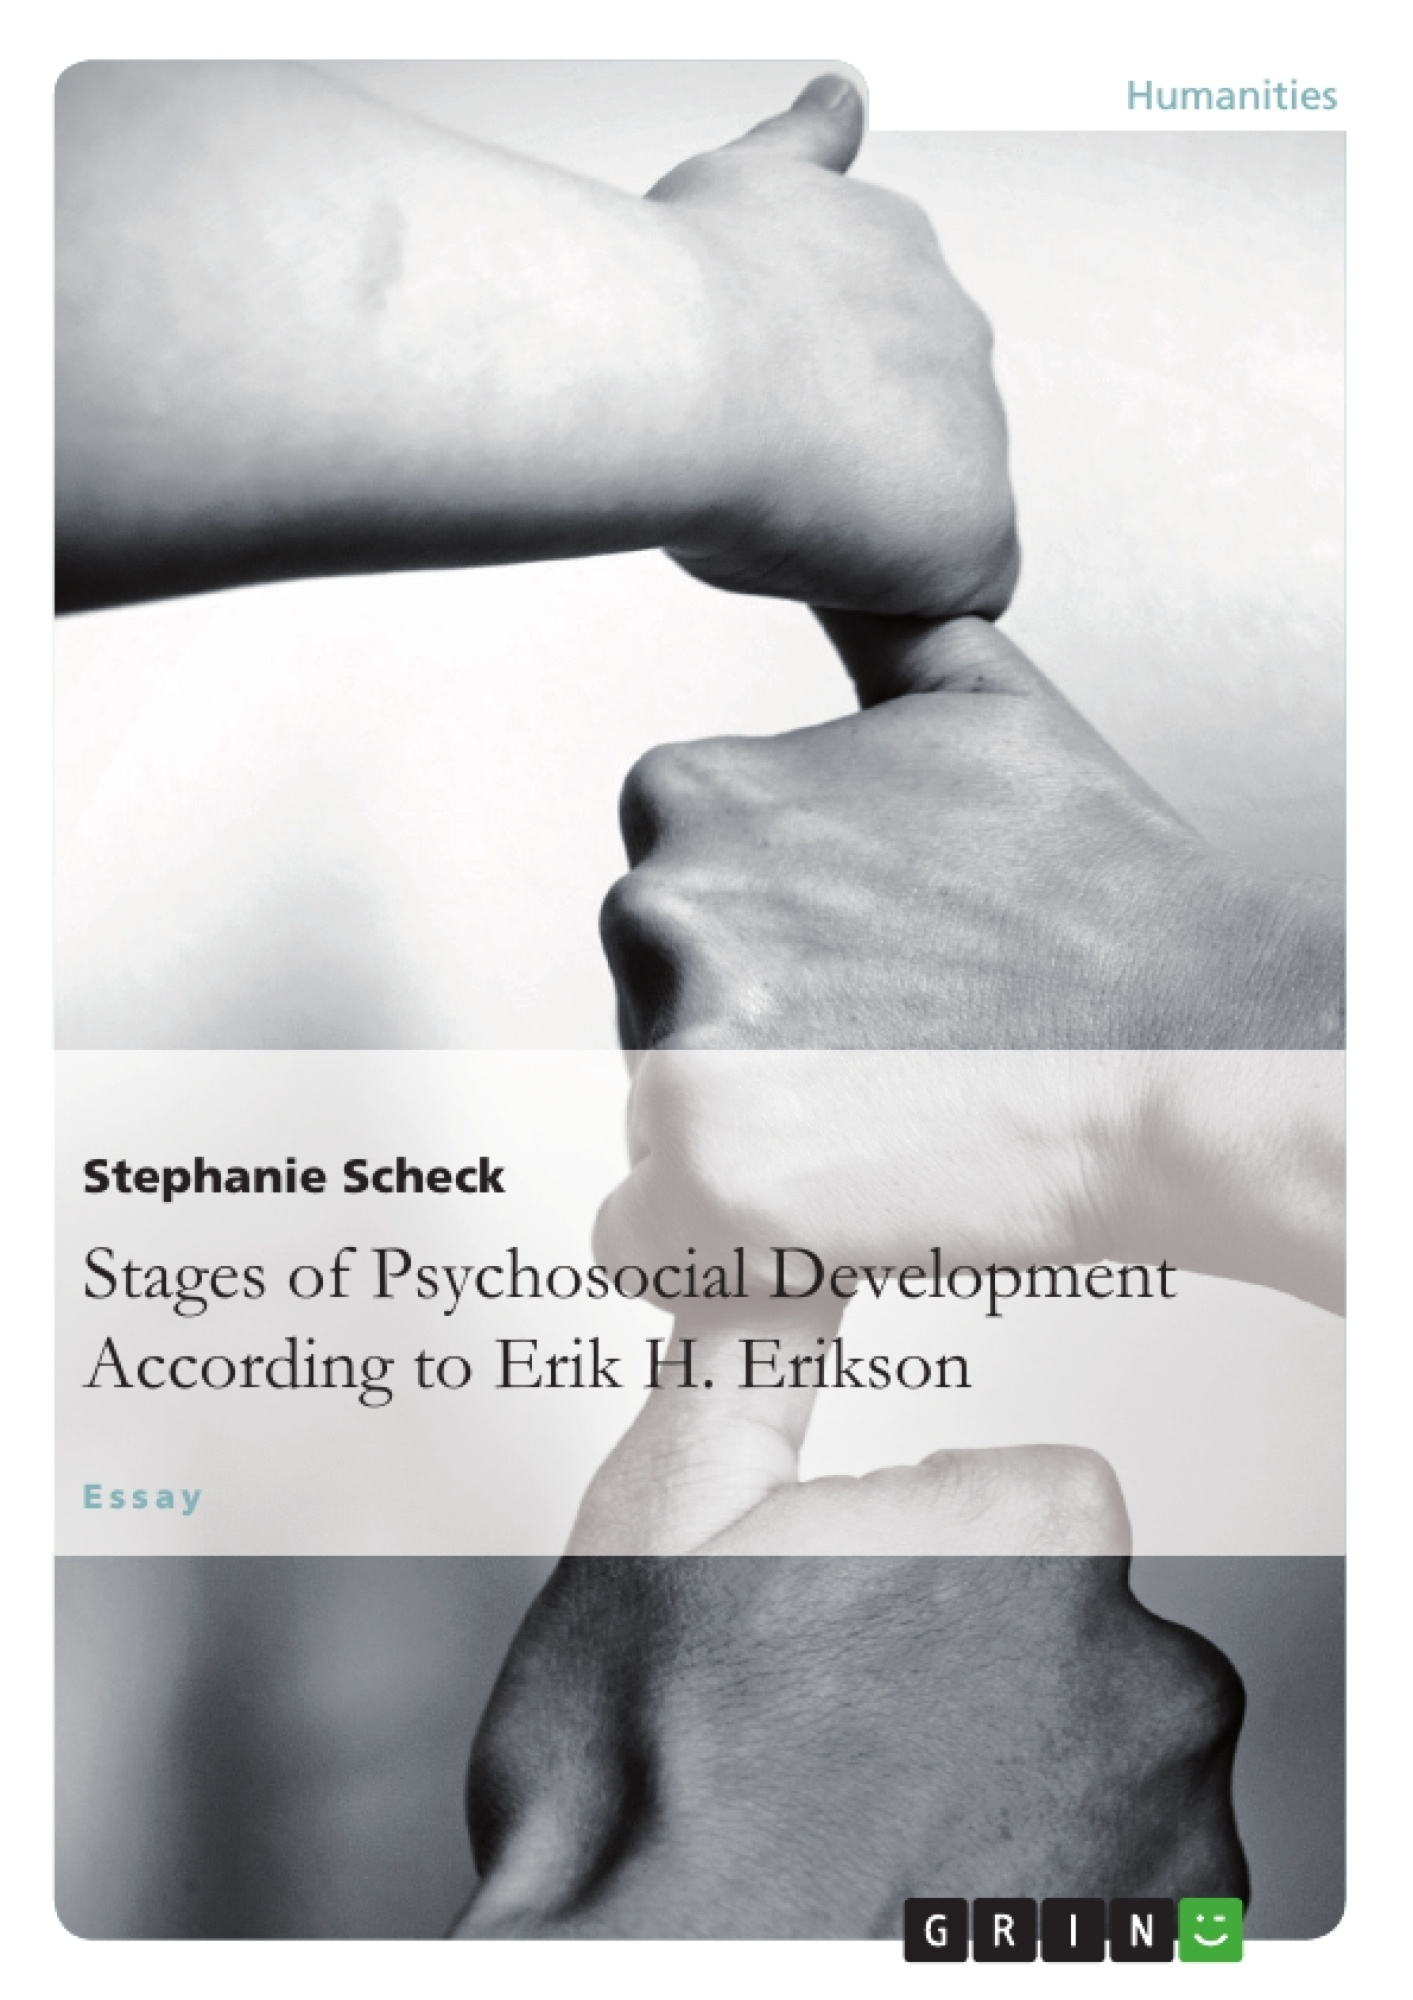 eriksons stages essay Weaknesses male bias erik erikson articulated psychosocial stage describes the life cycle hallmarks of white, western society and may not apply well to other cultures or even to our own today/ present time.